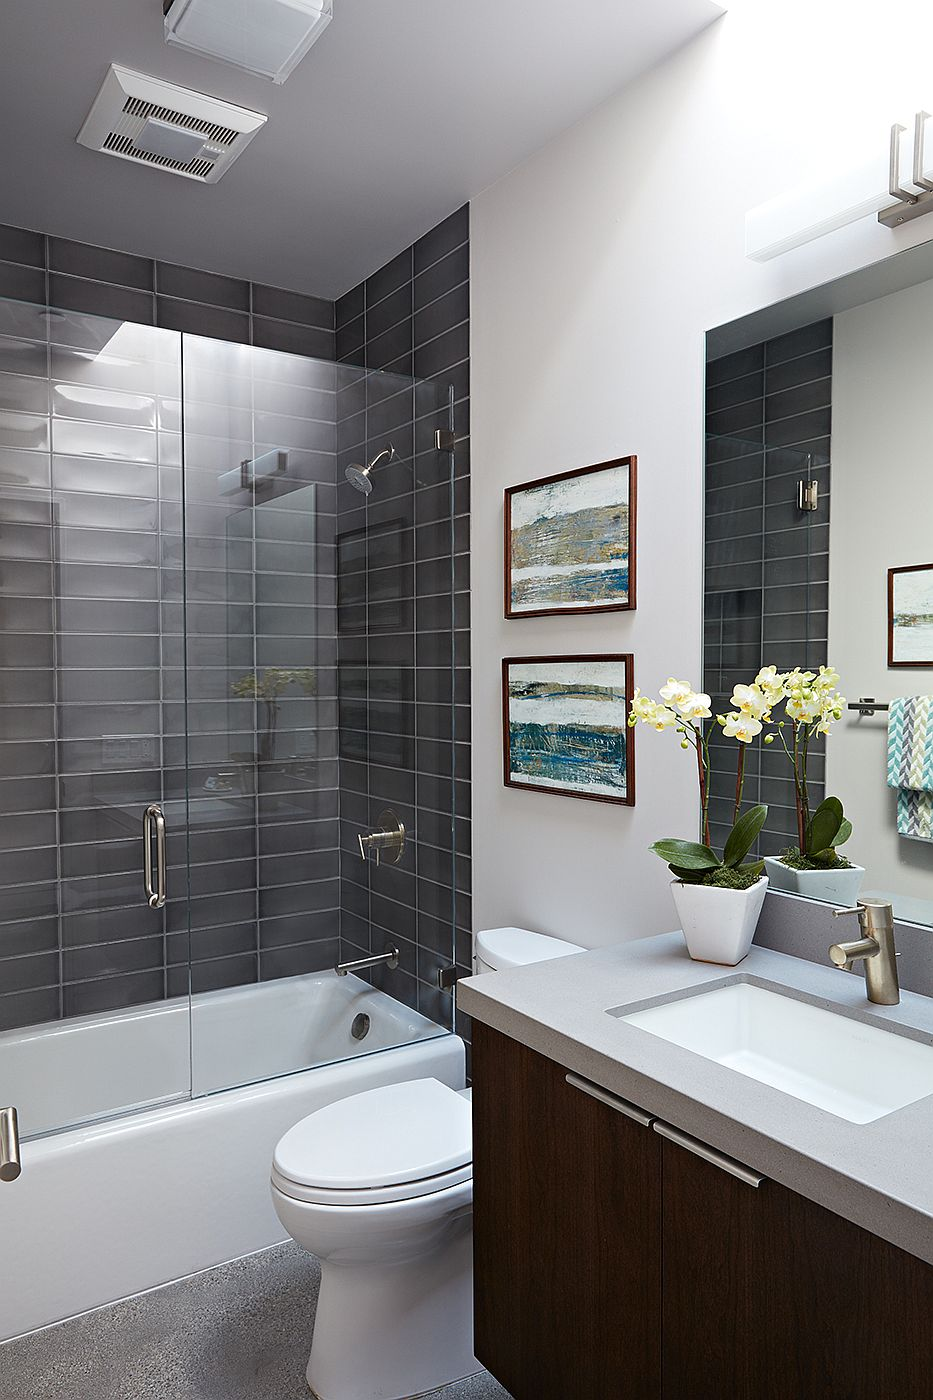 Gray tiles for the shower area inside the modern bathroom with neutral color palette